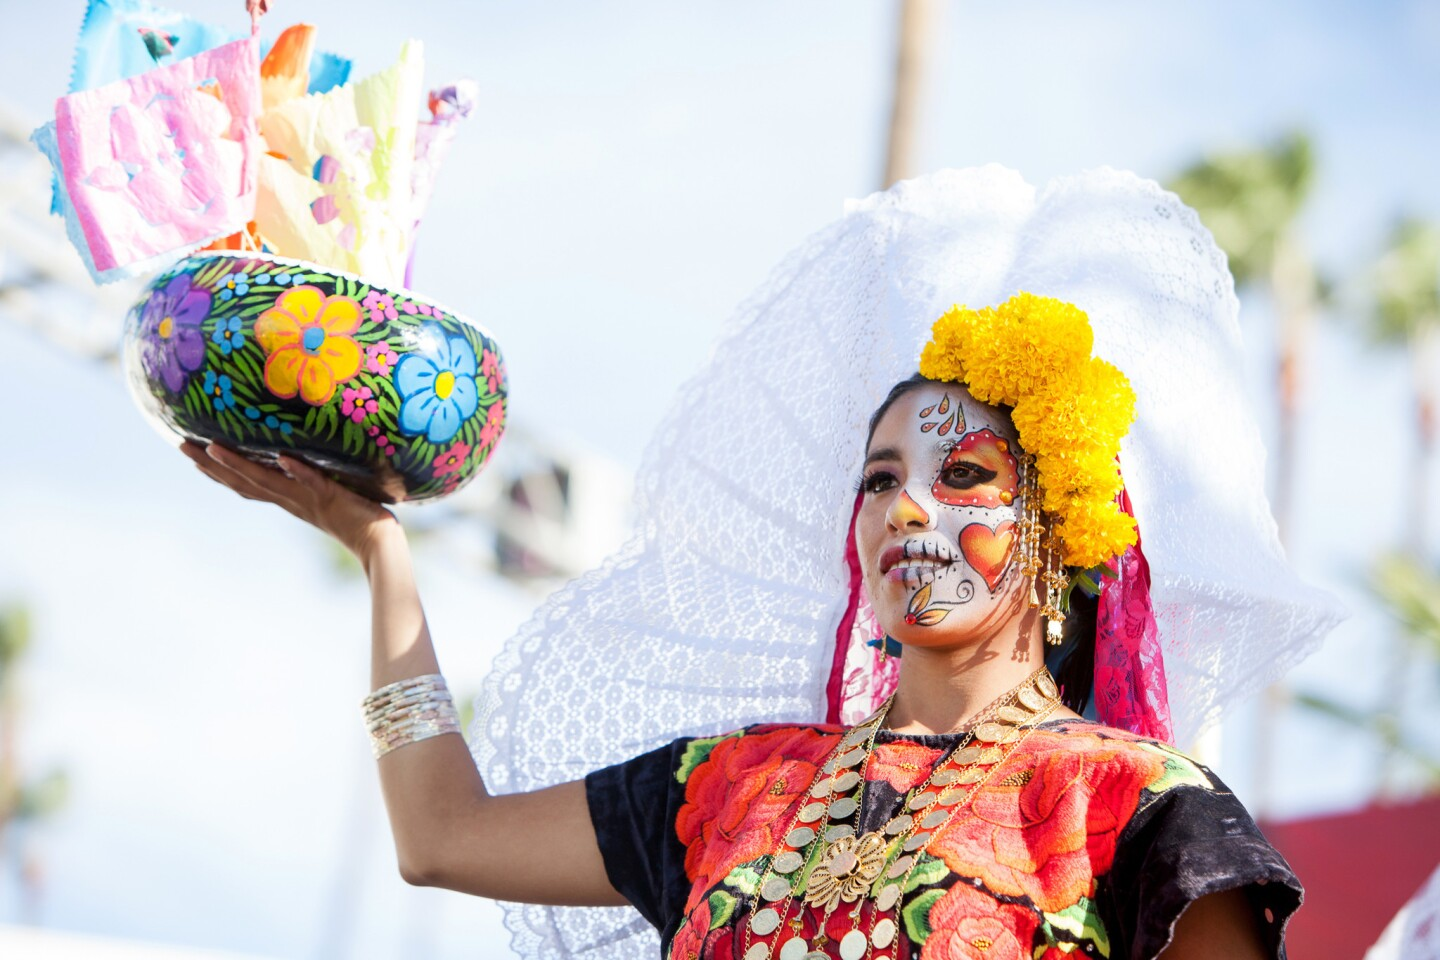 A look at a past Dia de los Muertos event celebration held at the Hollywood Forever cemetery.